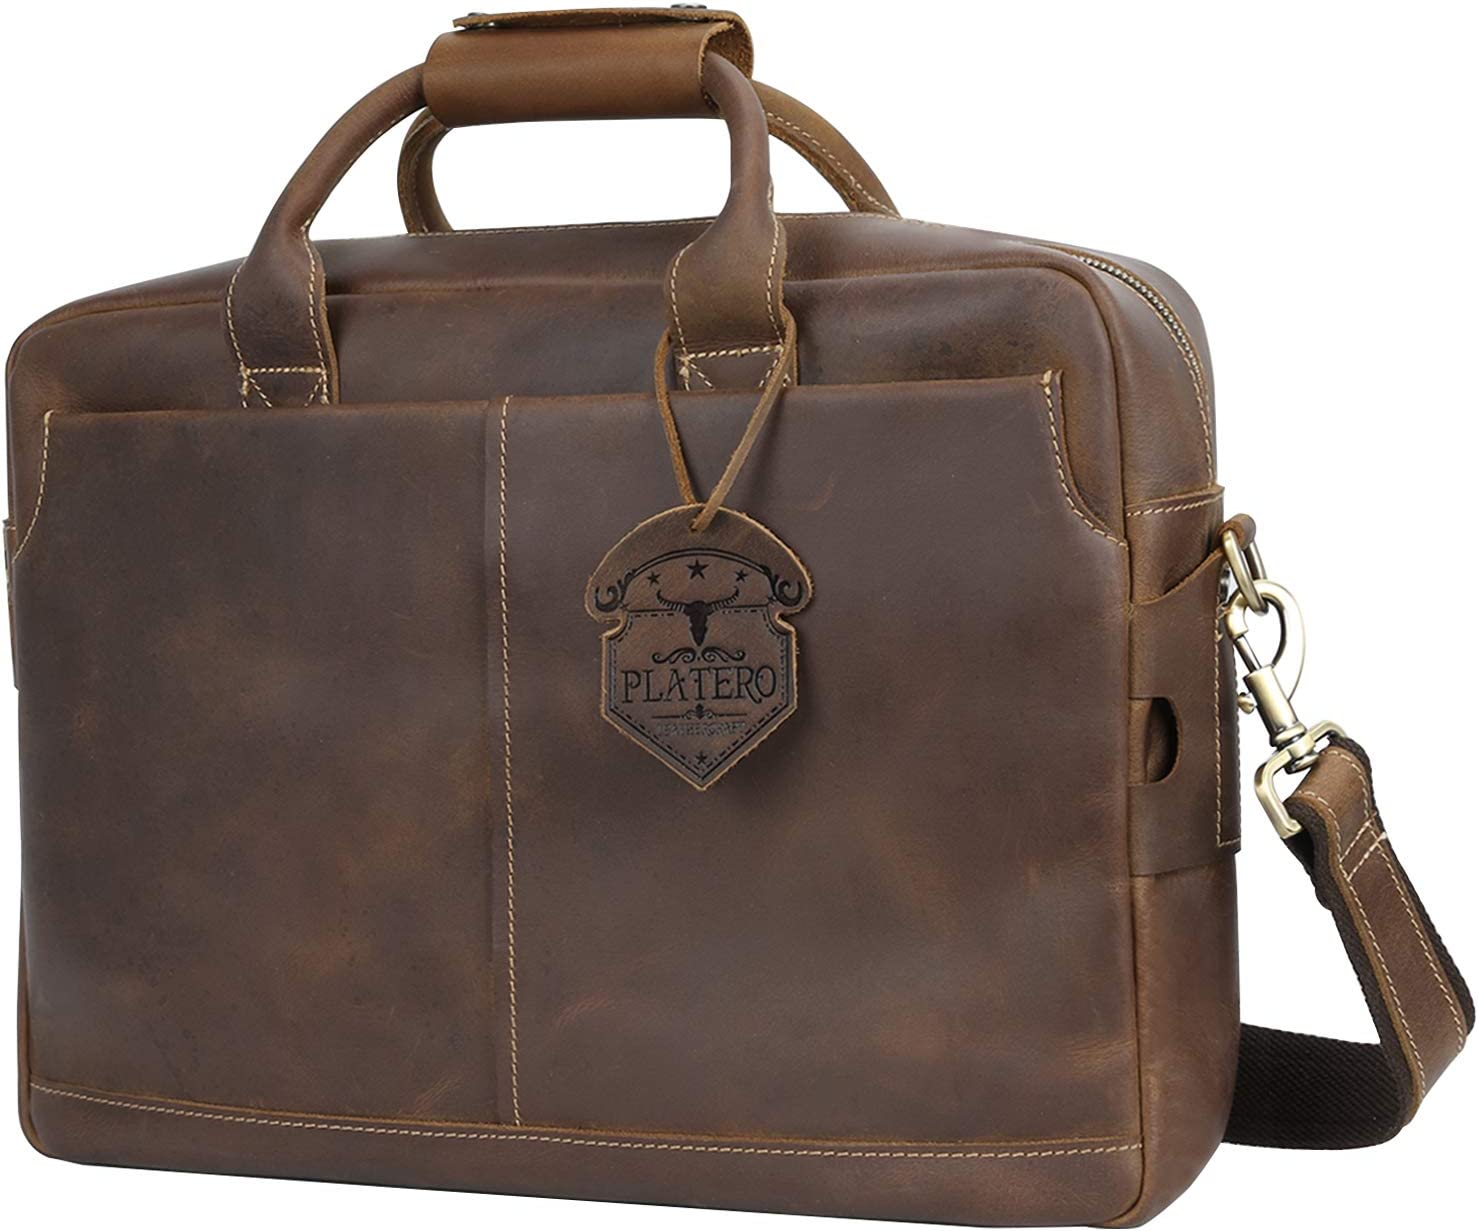 Platero Genuine Leather Briefcase for Men, Vintage Messenger Bag for 15.6'' Laptop Business Bag with Luggage Sleeve, Dark Brown